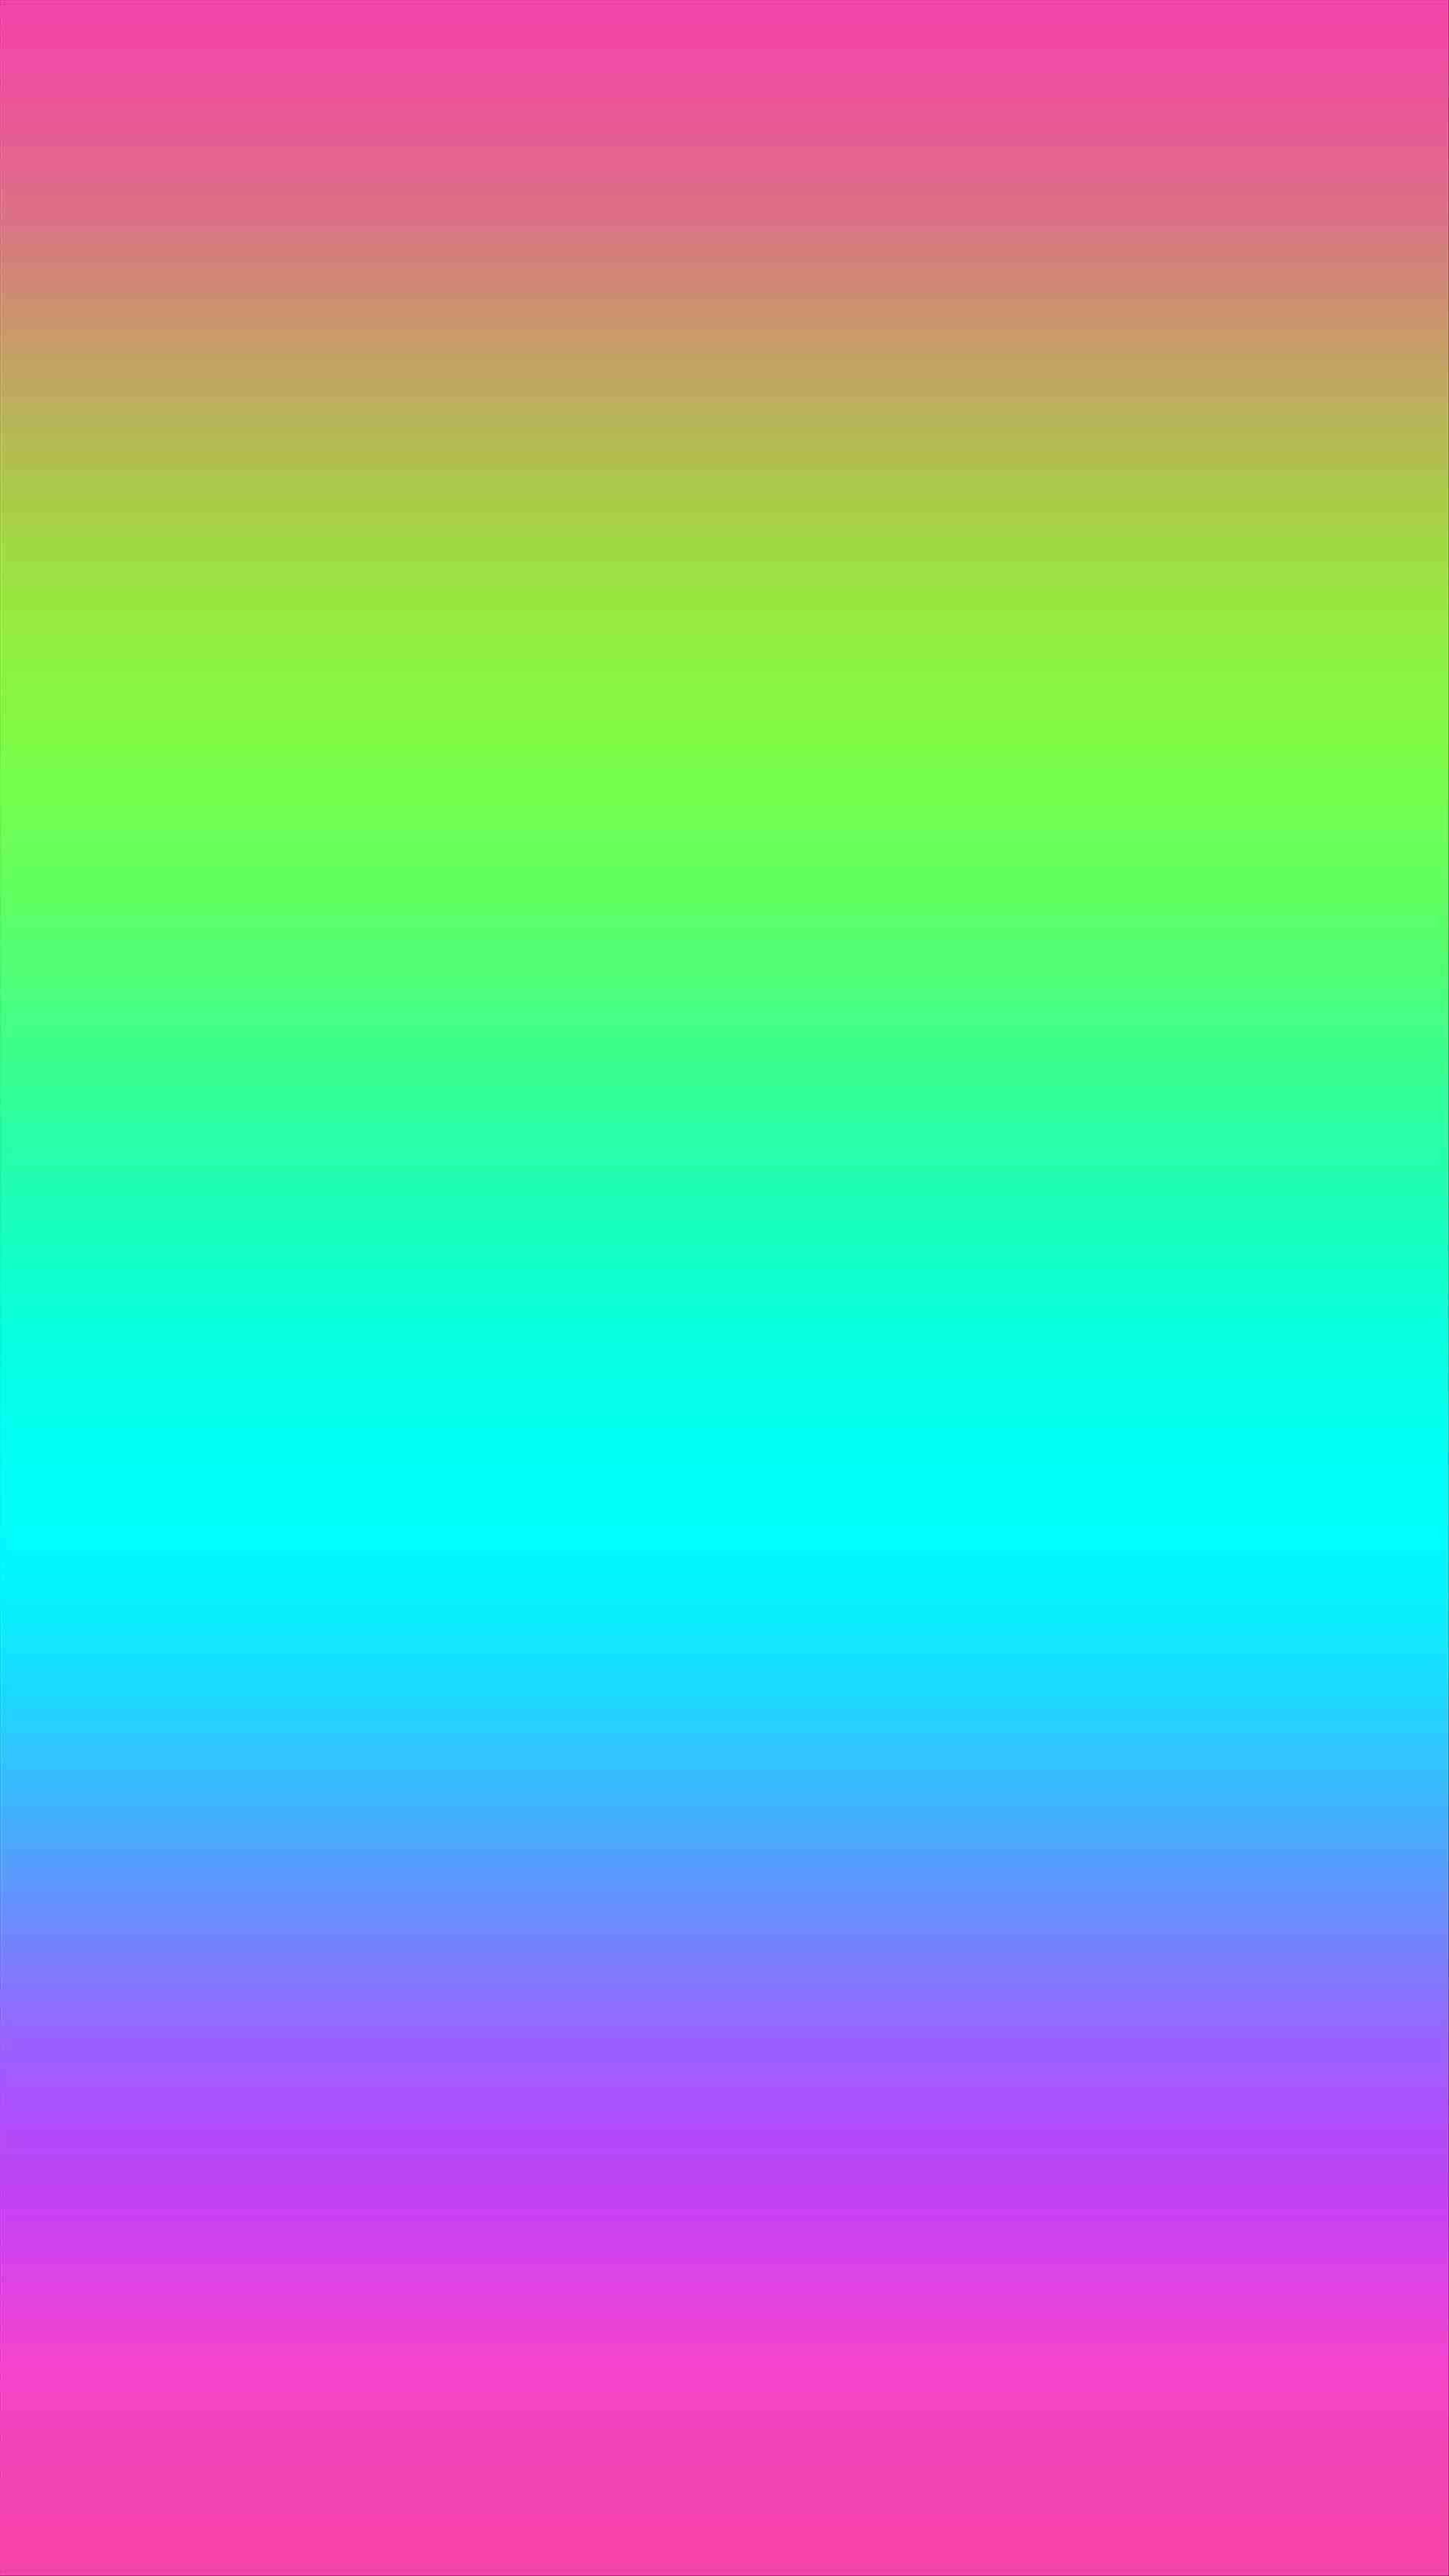 Res: 1899x3377, Download Wallpaper Green Ombre - blue-and-purple-ombre-wallpaper-polygon